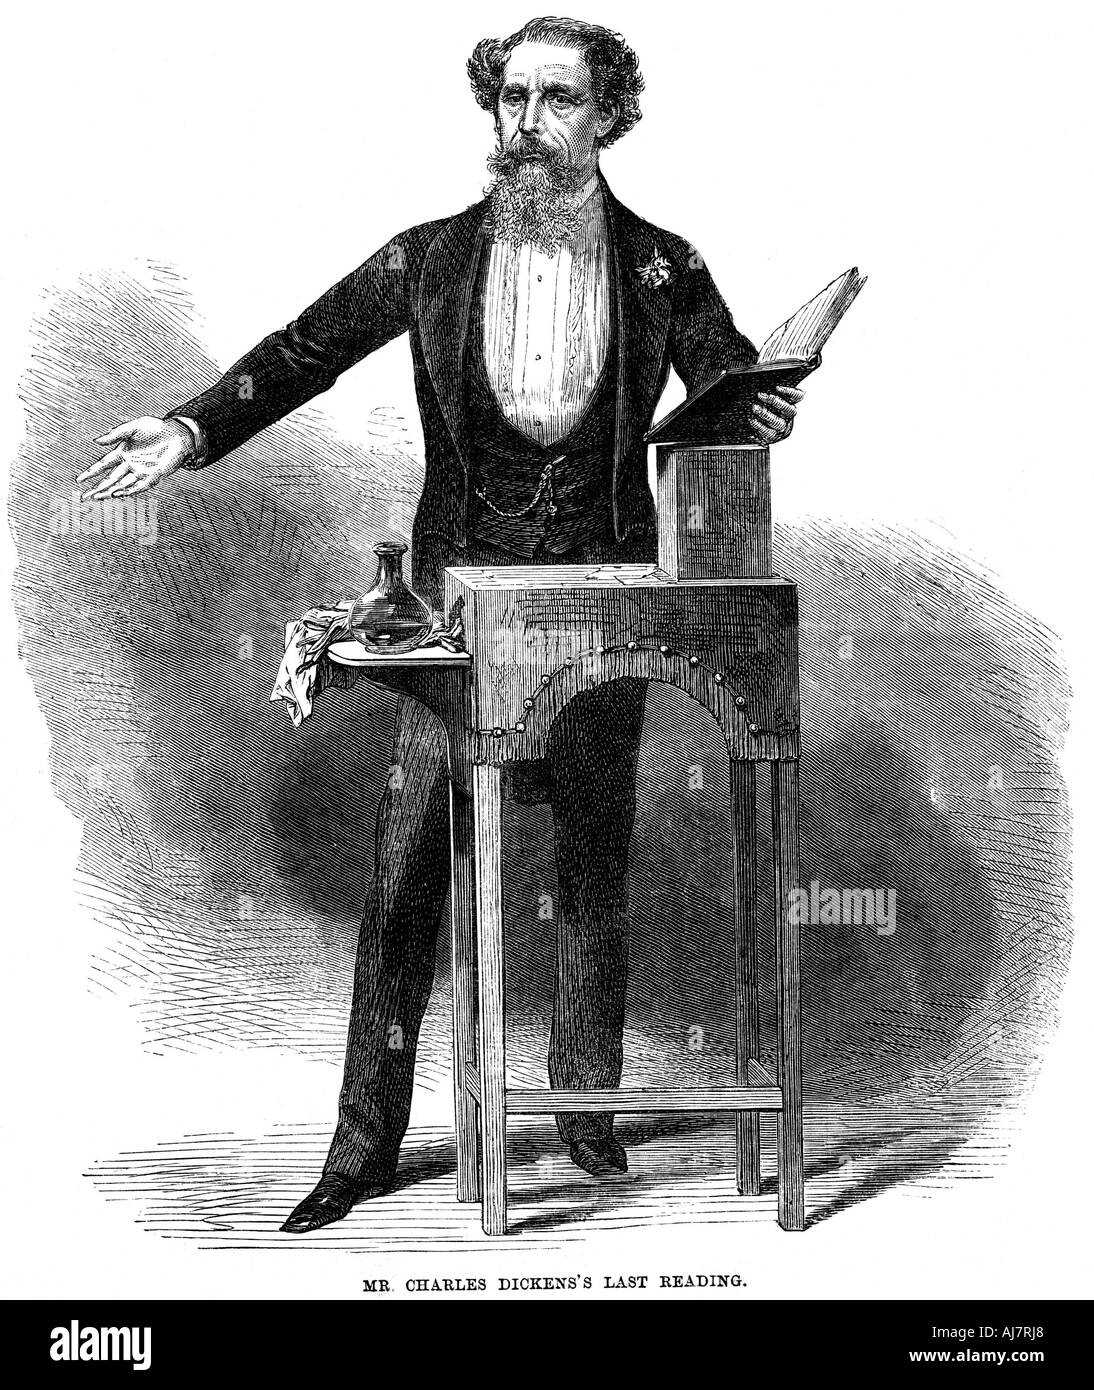 Charles Dickens 1812 70 giving his last public reading at St James s Hall London 5 March 1870  - Stock Image